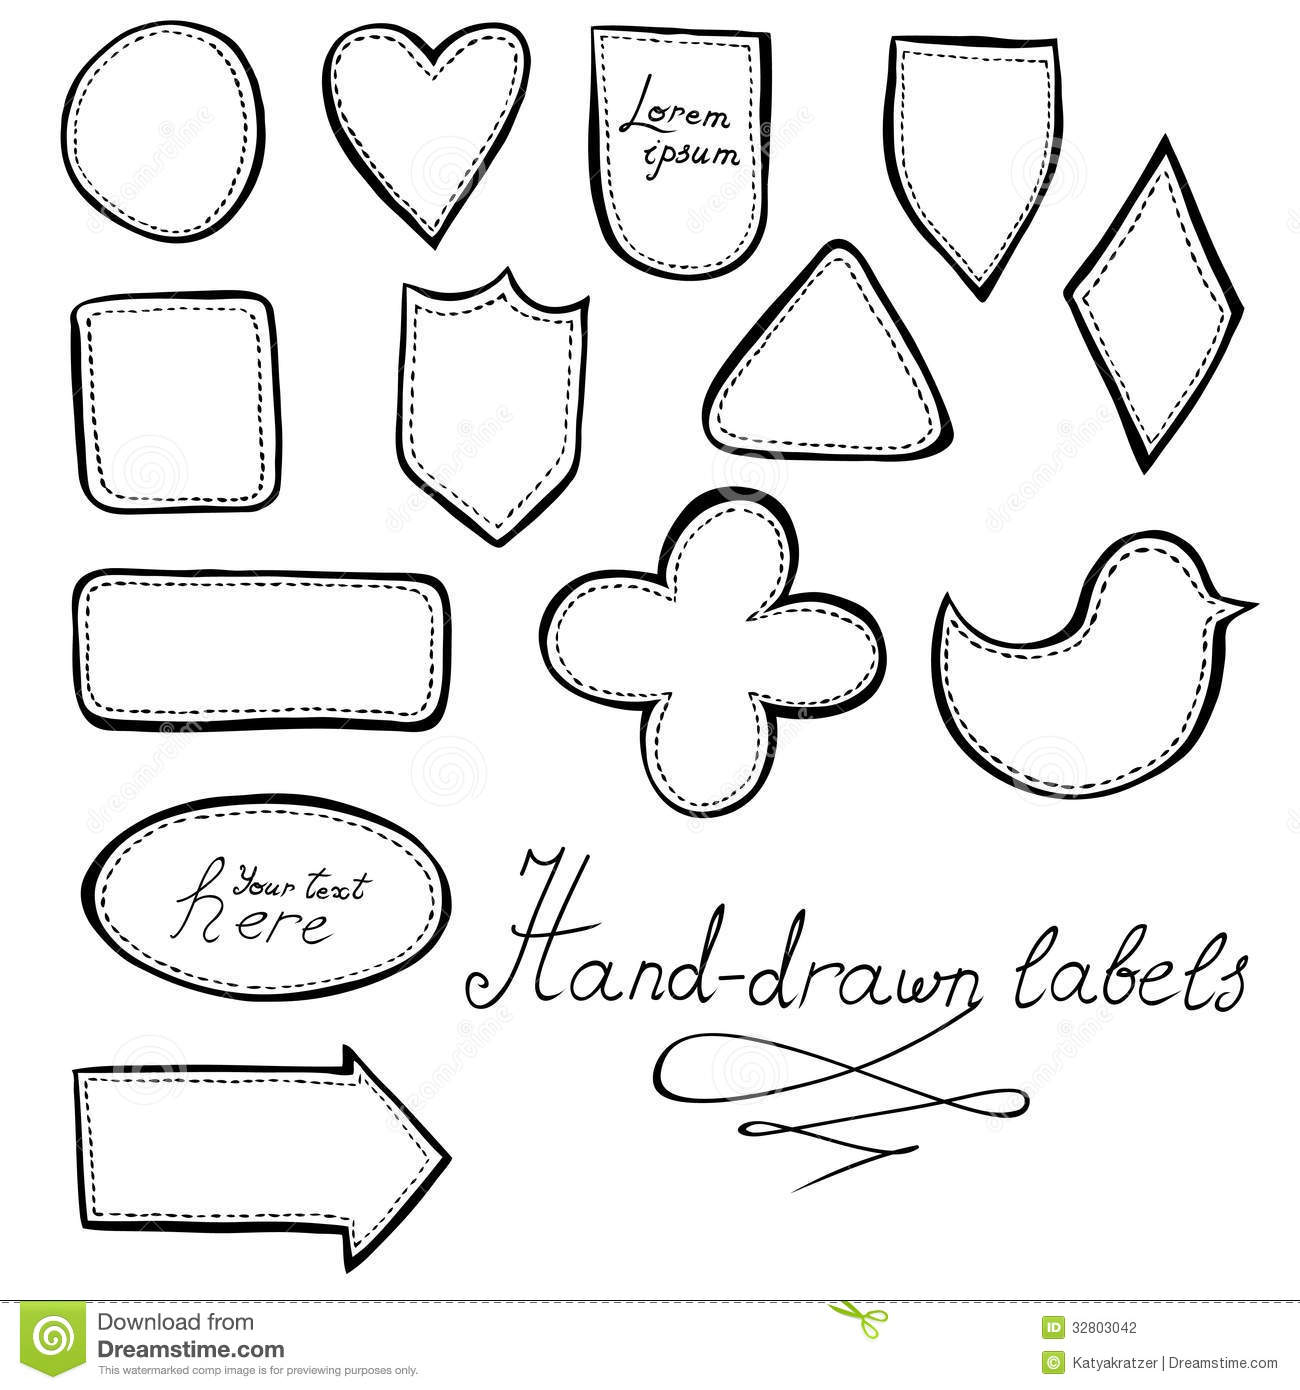 Vintage Label Outline Hand-drawn vintage labels set Vintage Label Outline